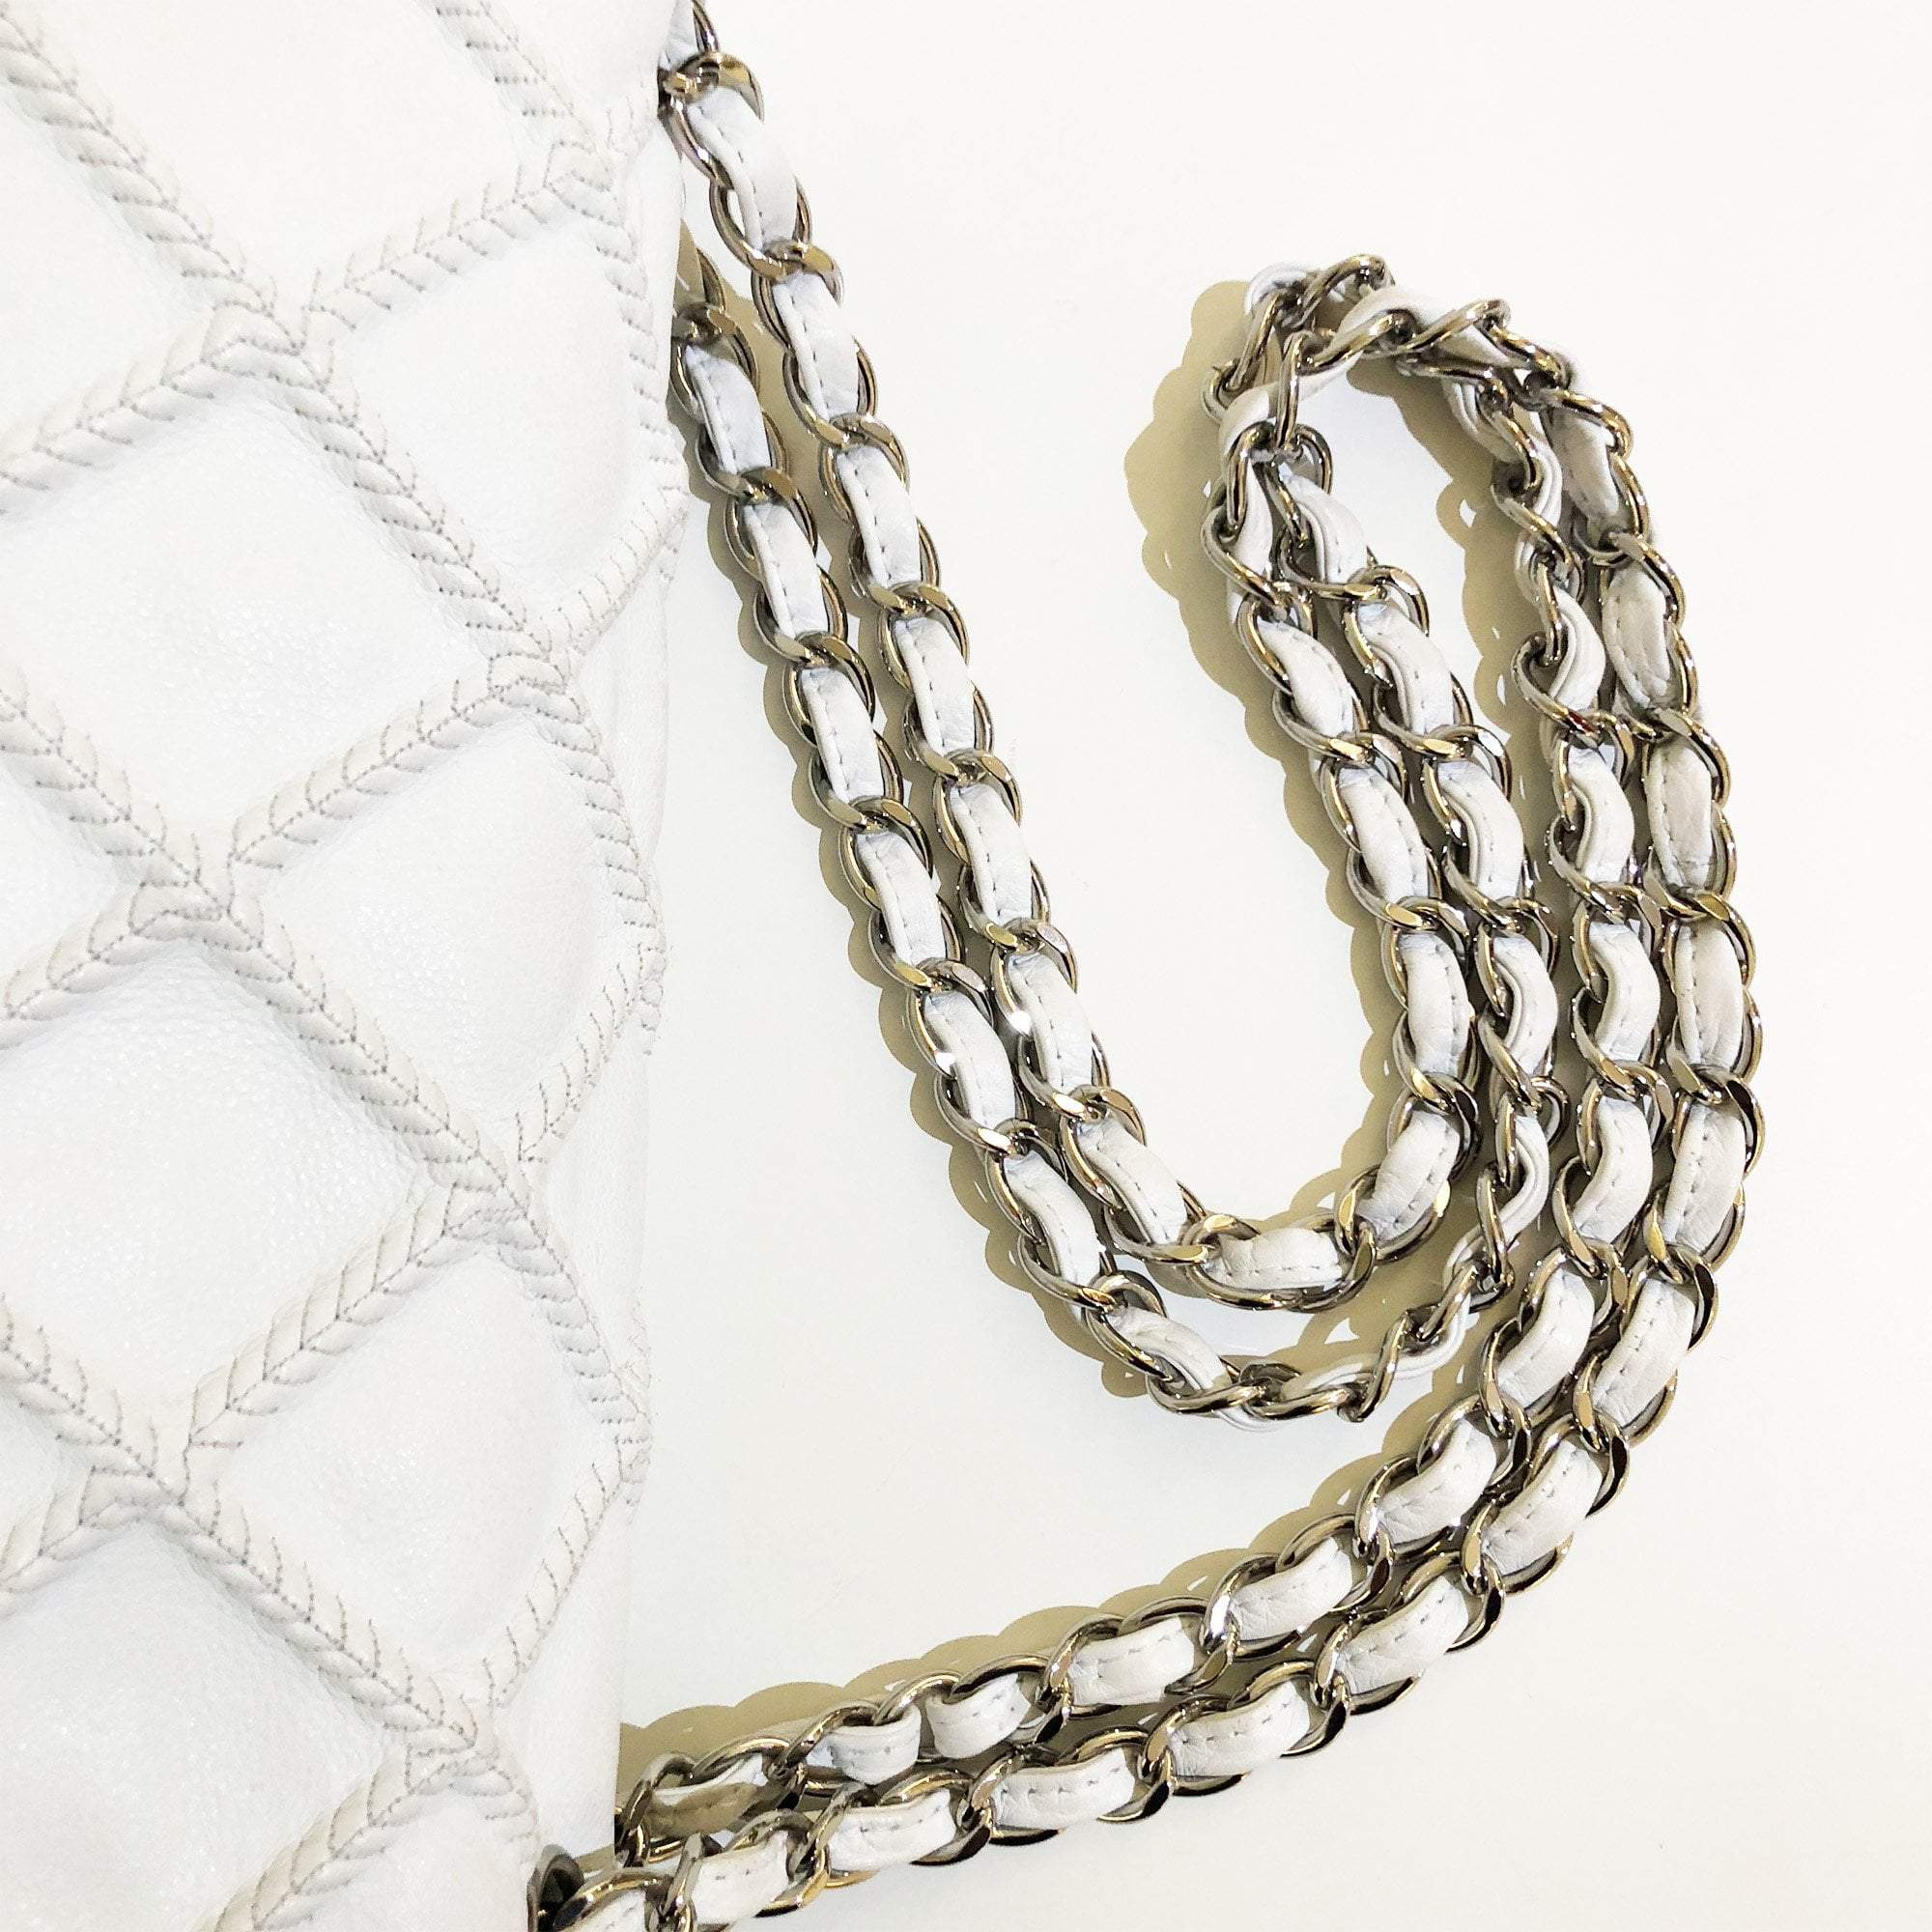 Chanel Ivory Stitched Quilted Leather Flap Bag